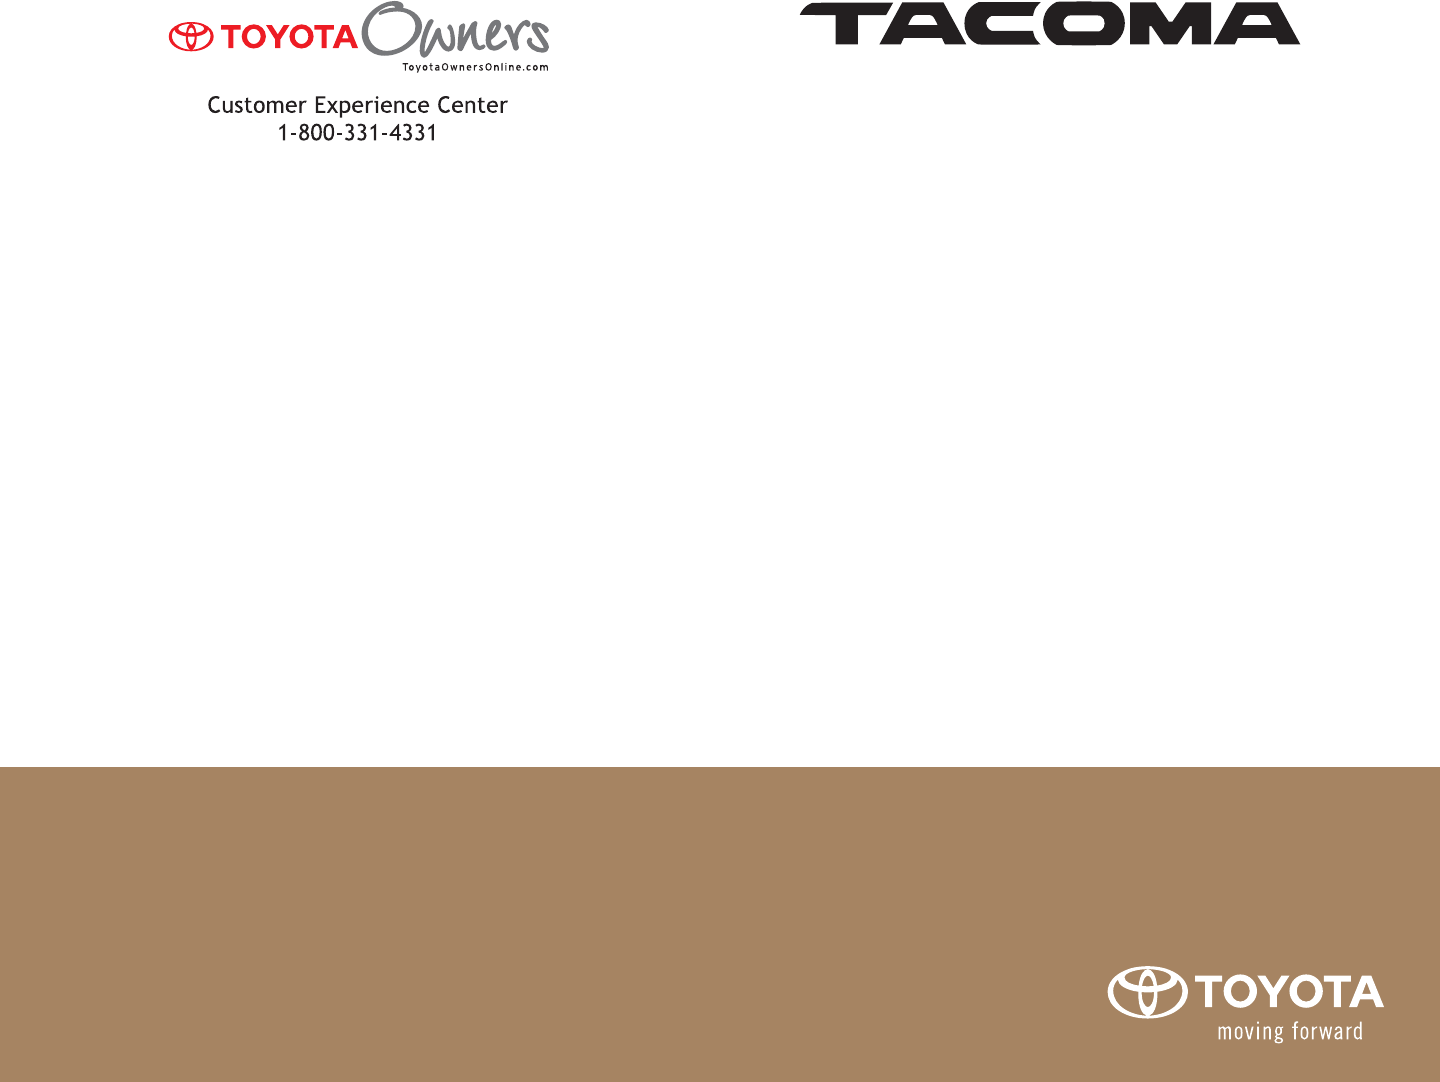 2009 toyota tacoma owners manual pdf rh manuals co 2009 toyota tacoma service manual 2009 toyota tacoma owners manual